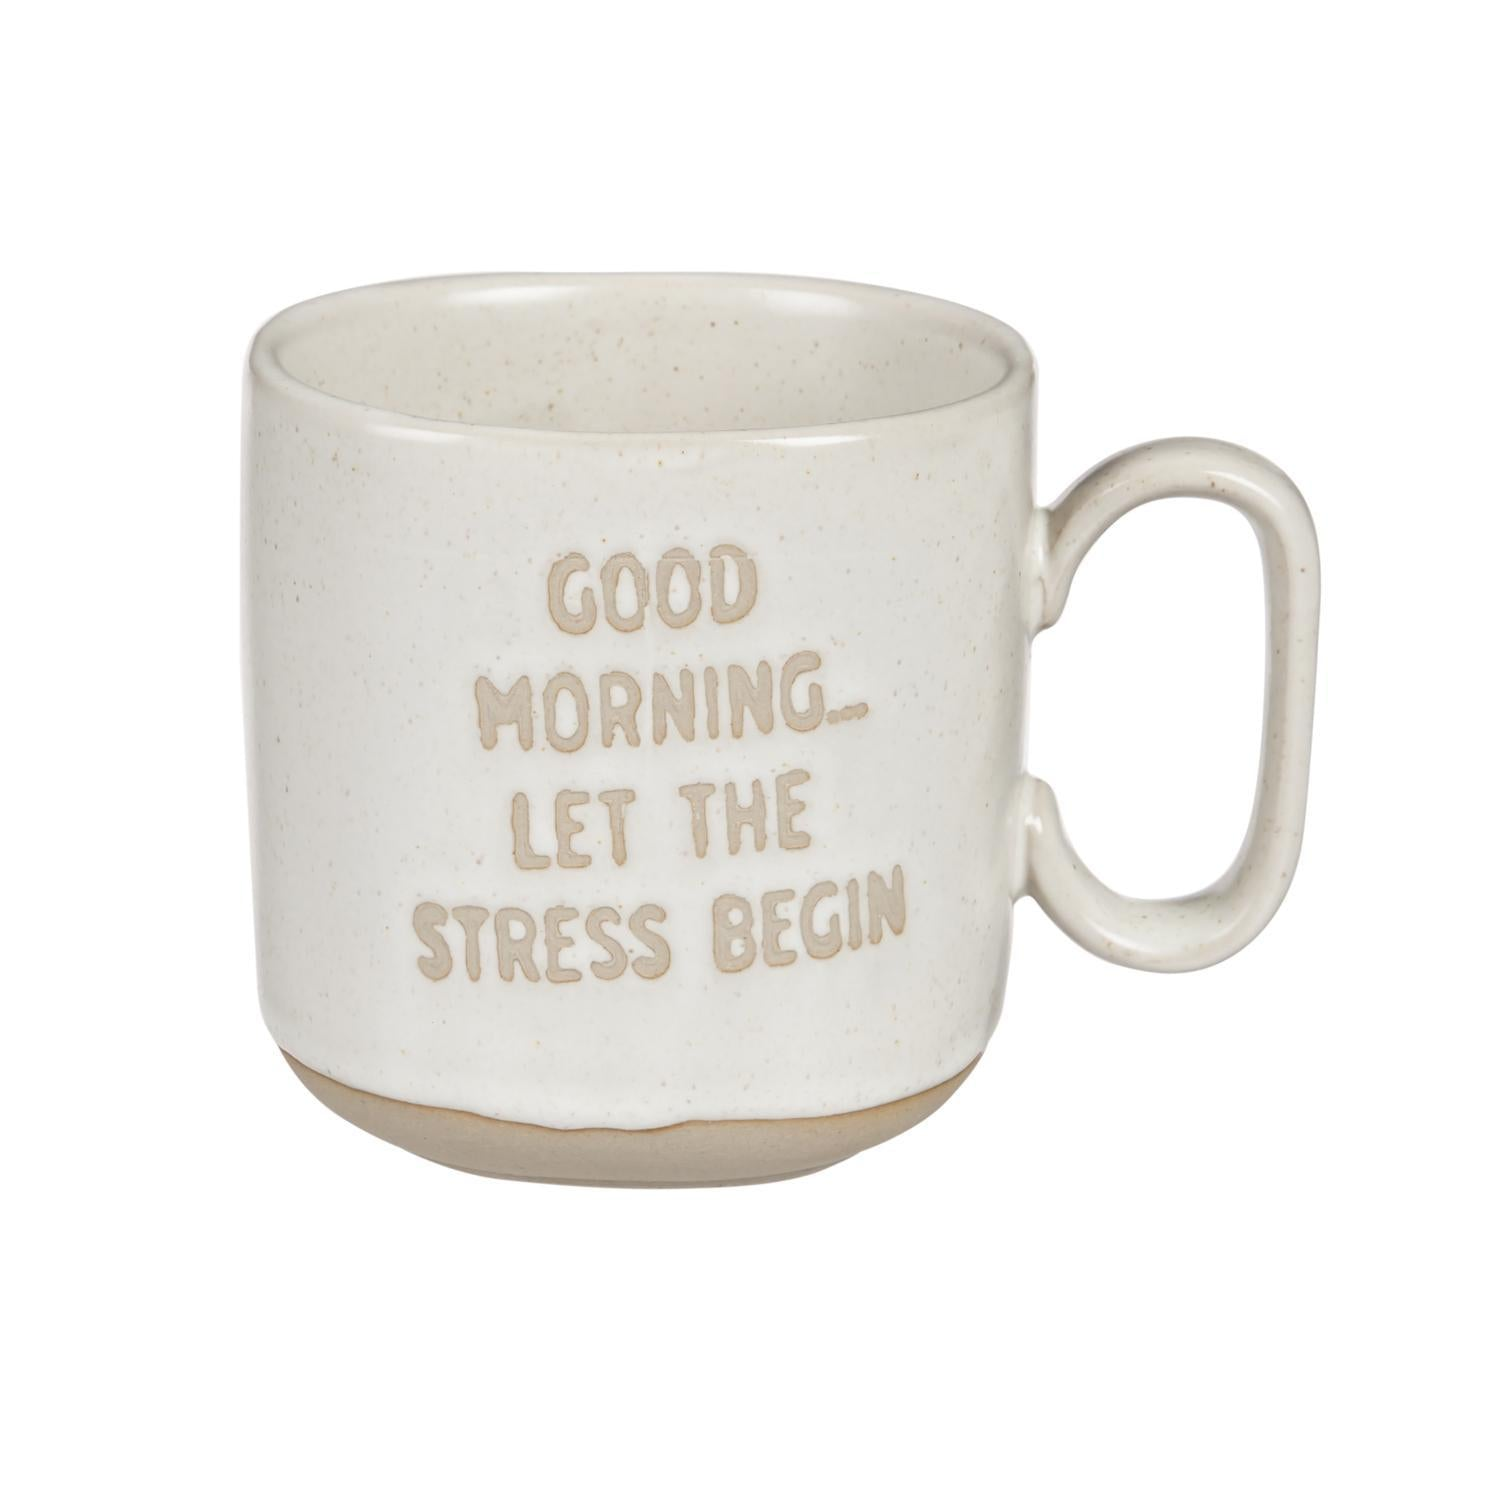 Good Morning Ceramic Mug